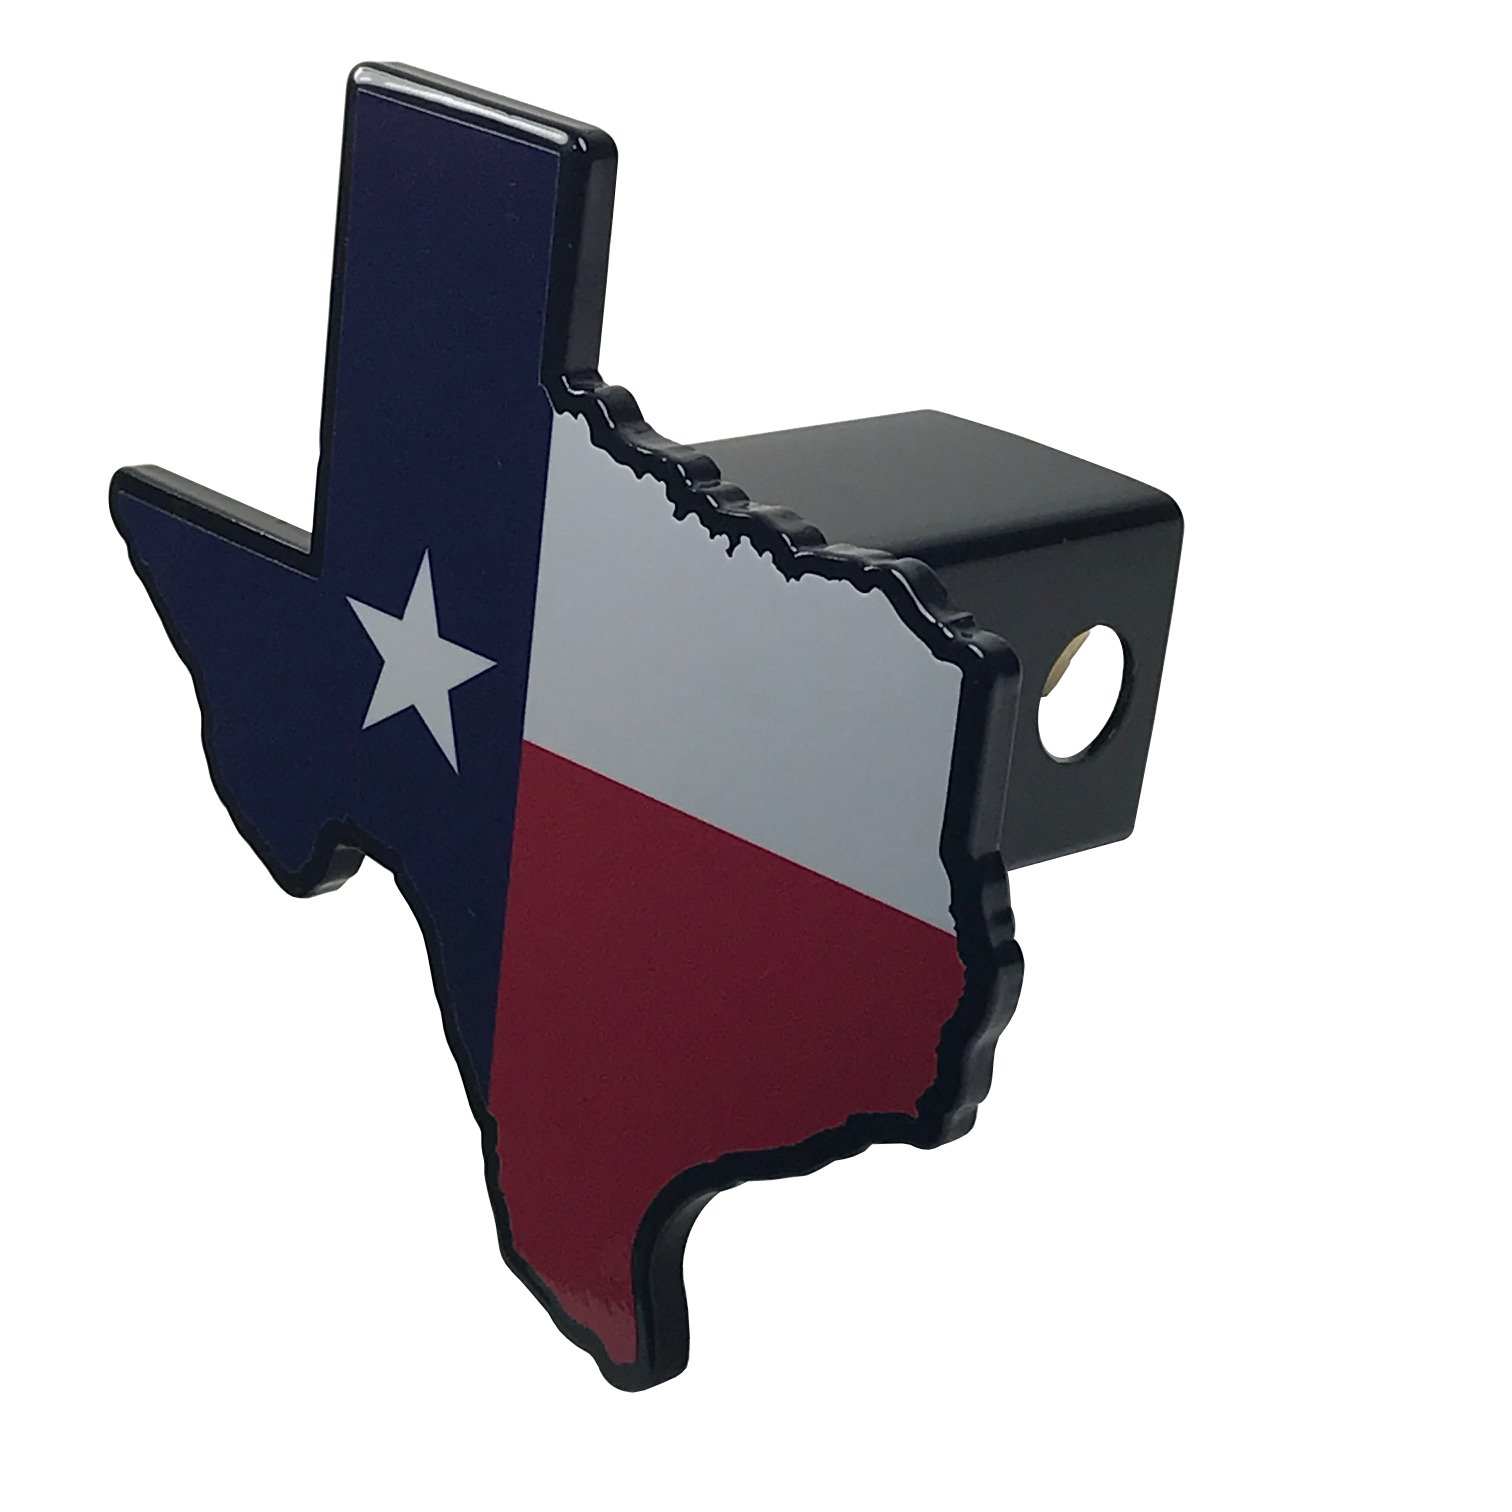 AMG Auto Emblems Premium State of Texas Flag (Texas Shaped) SOLID METAL Heavy Duty Hitch Cover by AMG Auto Emblems